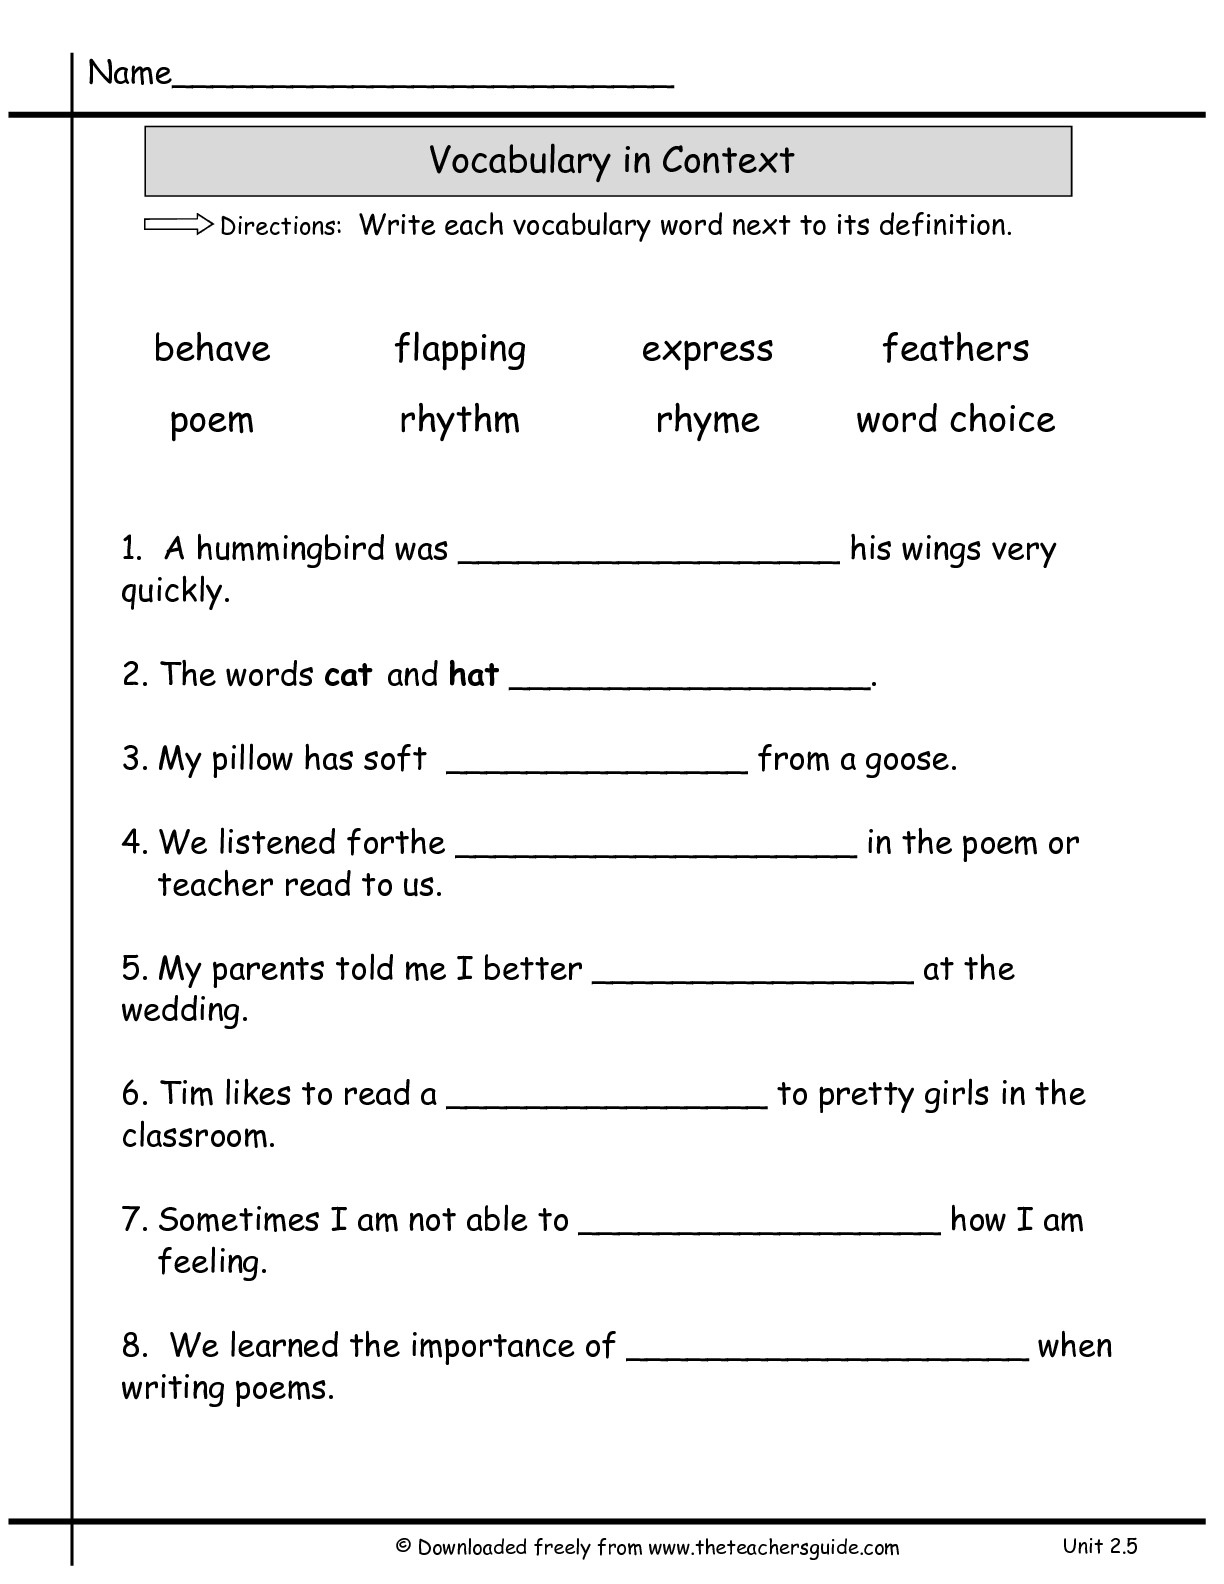 13 Best Images Of Definition Matching Worksheet